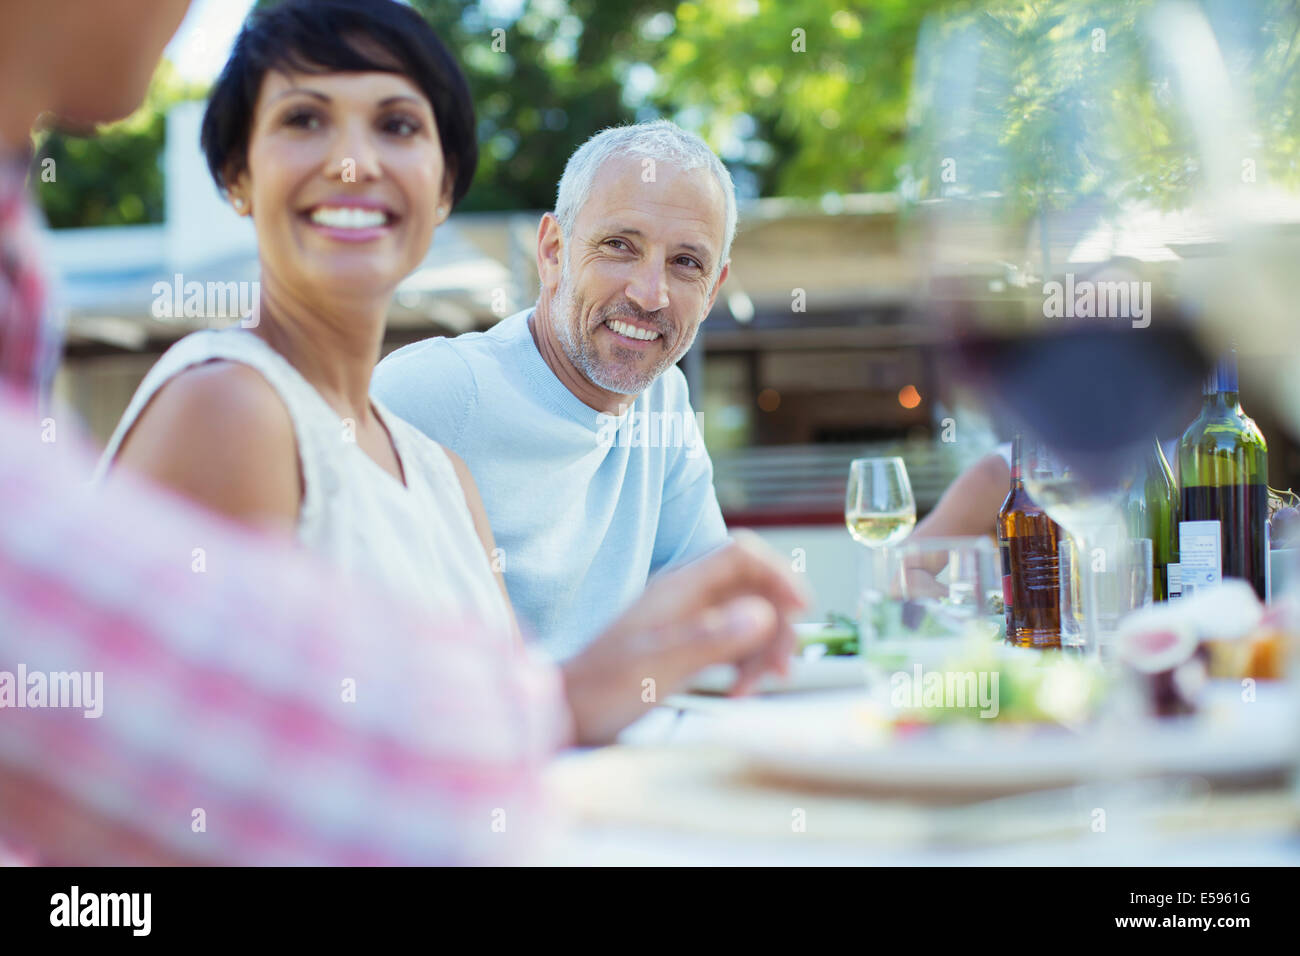 Couple smiling at table outdoors - Stock Image